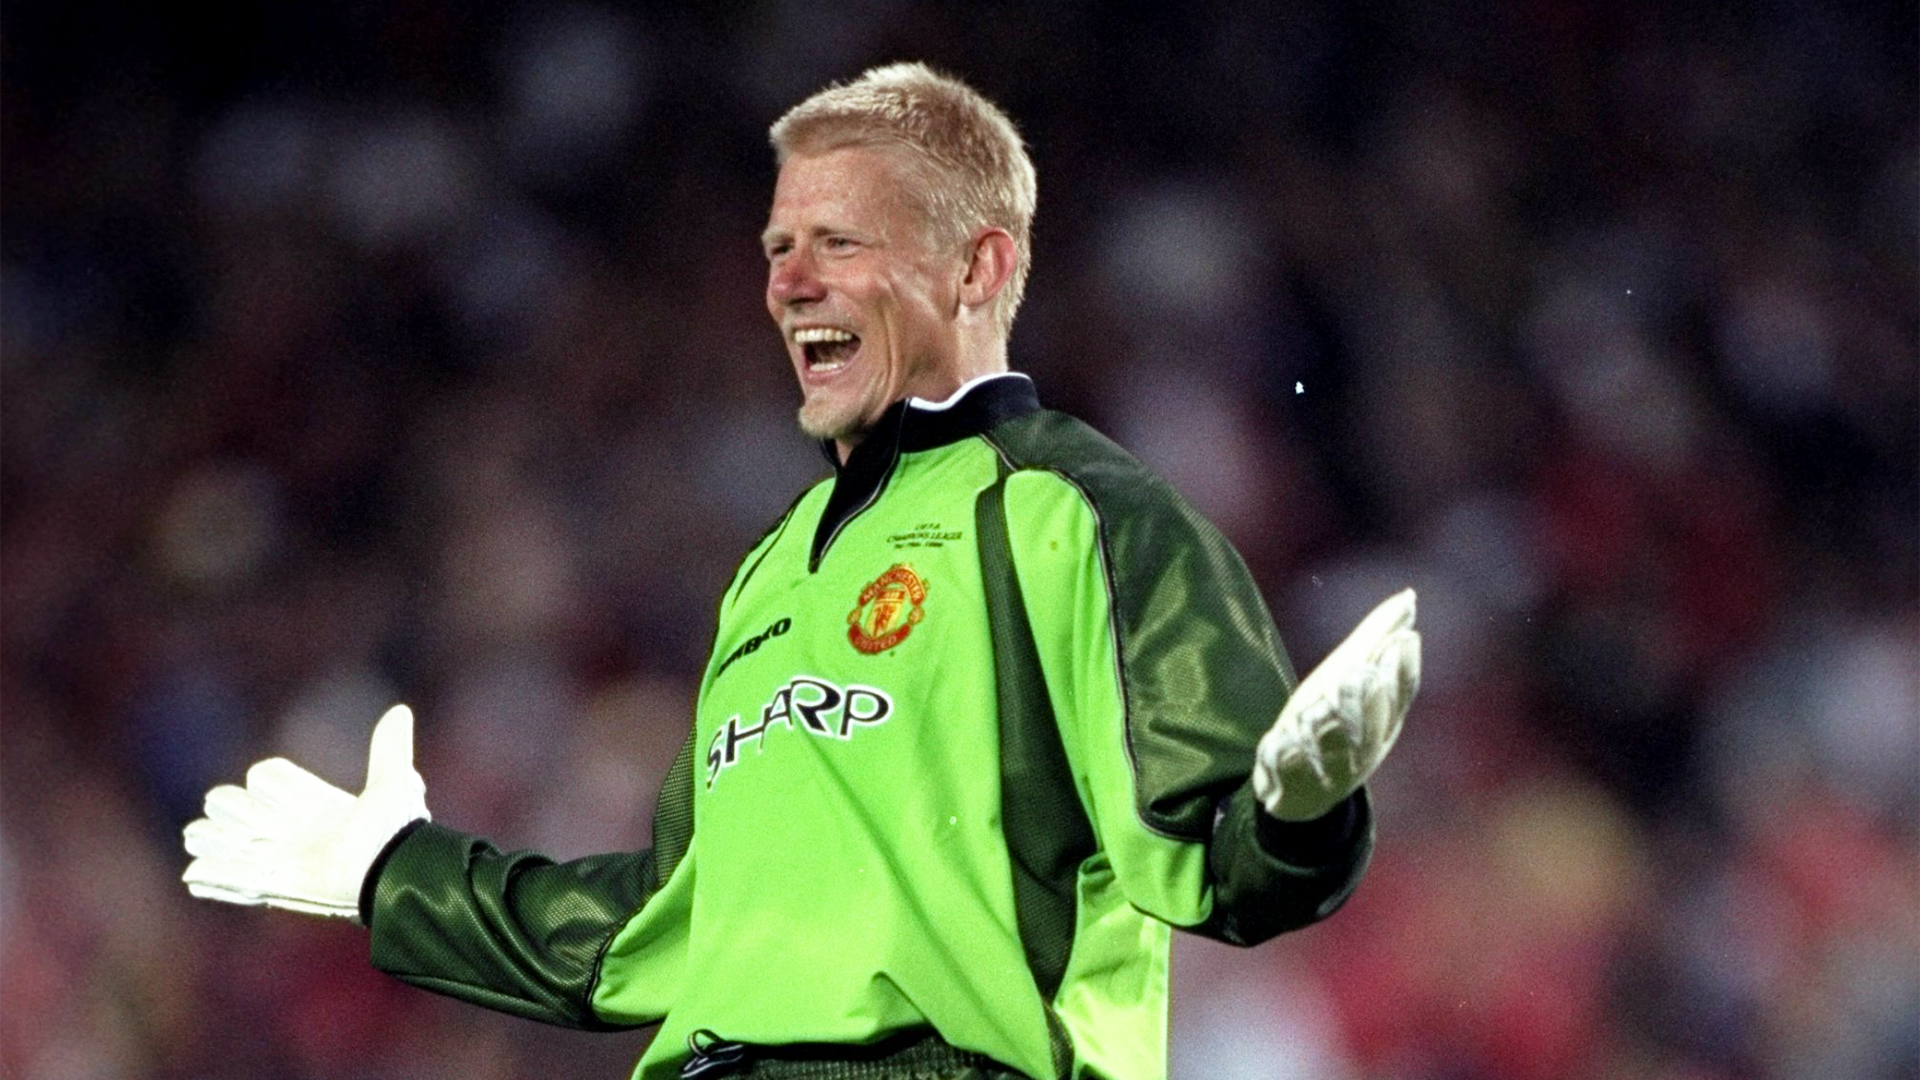 https://images.daznservices.com/di/library/GOAL/76/b4/peter-schmeichel-man-united-champions-league-1999_1rv14v3rucvxa1rpxlq0b4atkp.png?t=19396441